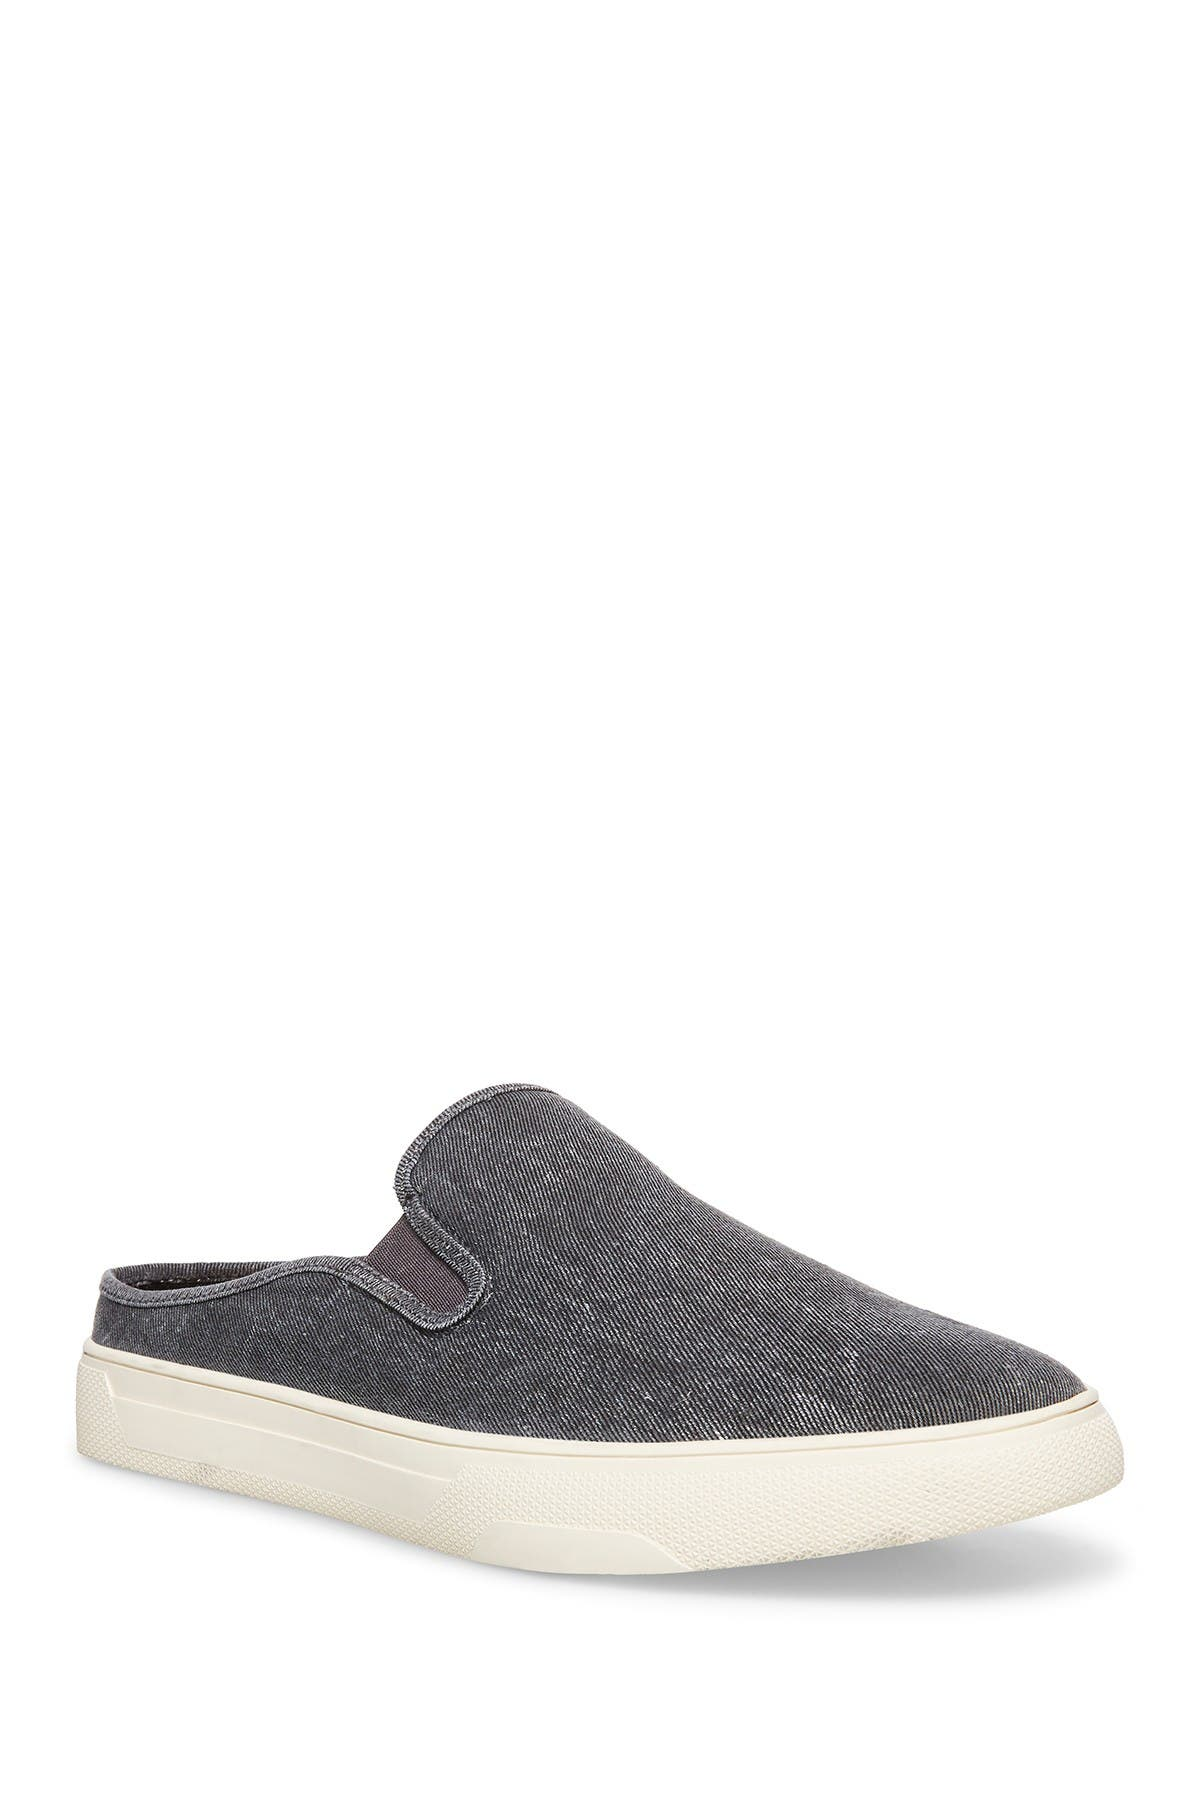 Image of Madden Alfie Slip-On Sneaker